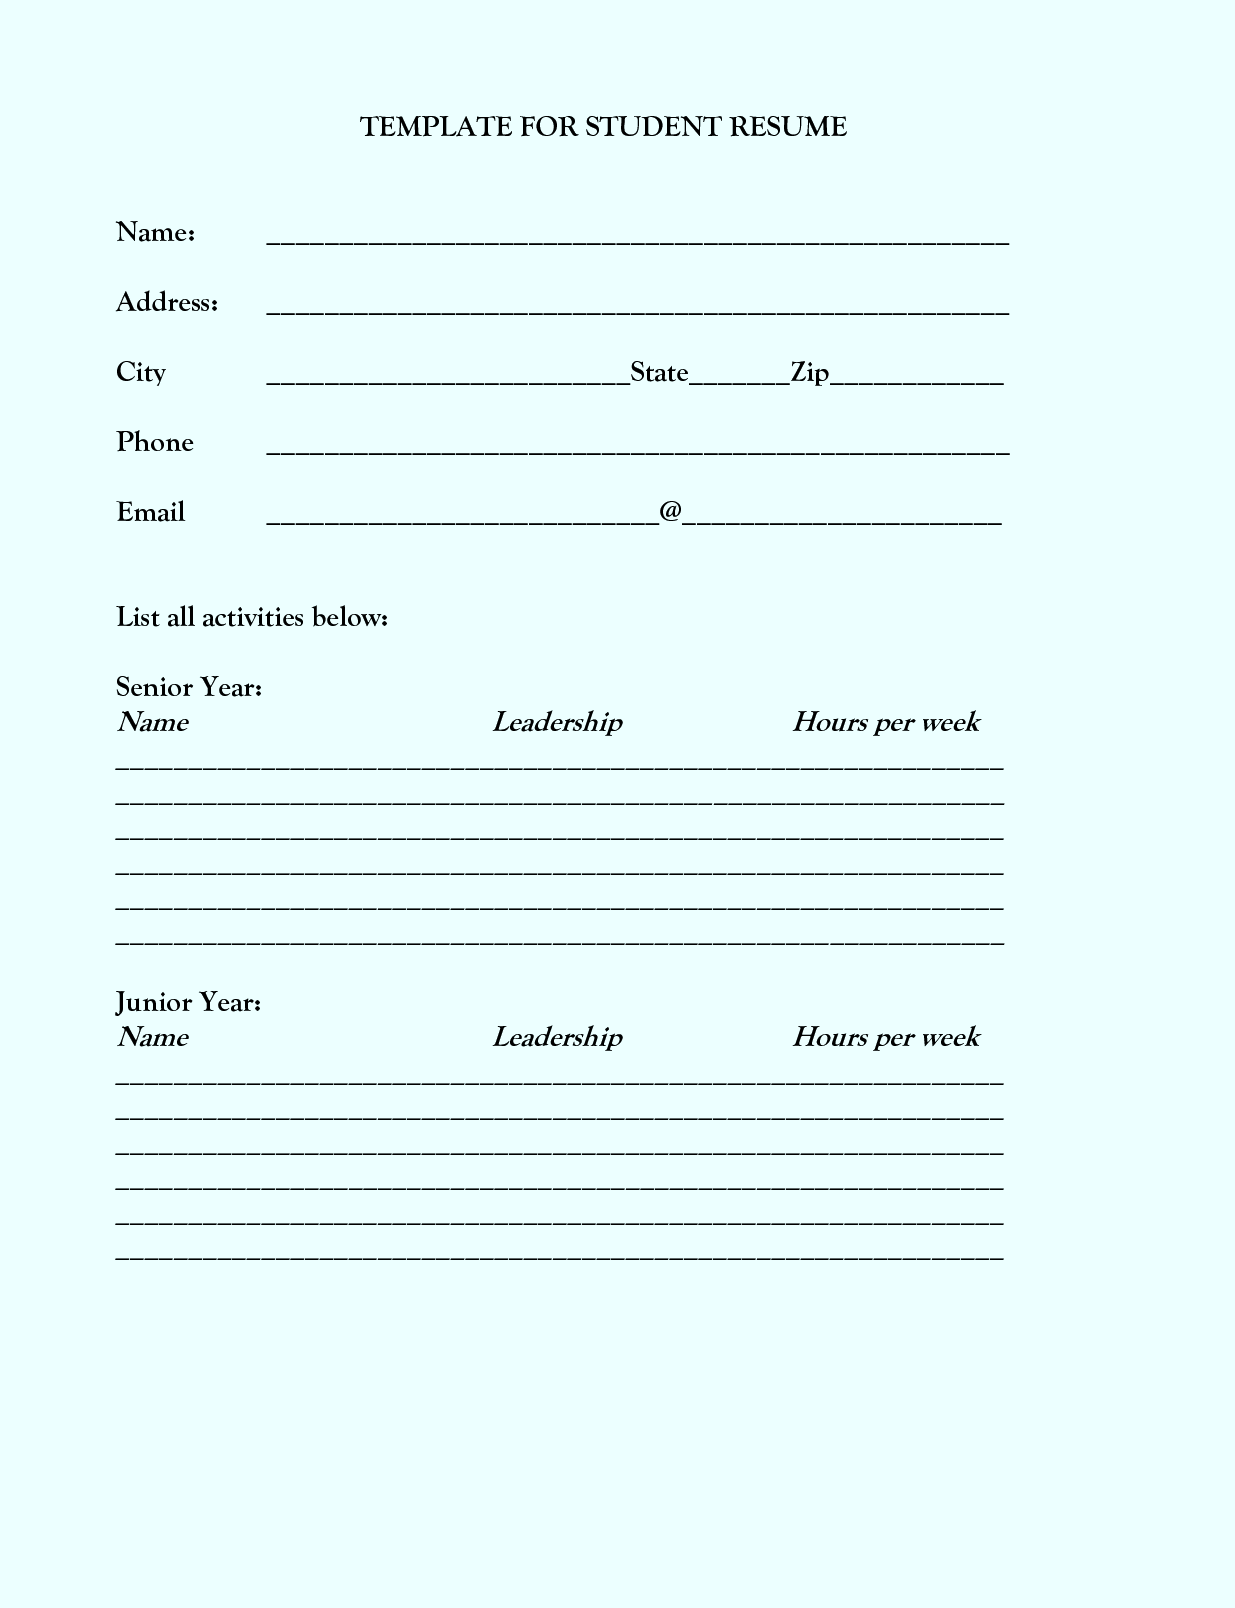 Google Docs Resume Template - http://www.latestresume.info/google ...